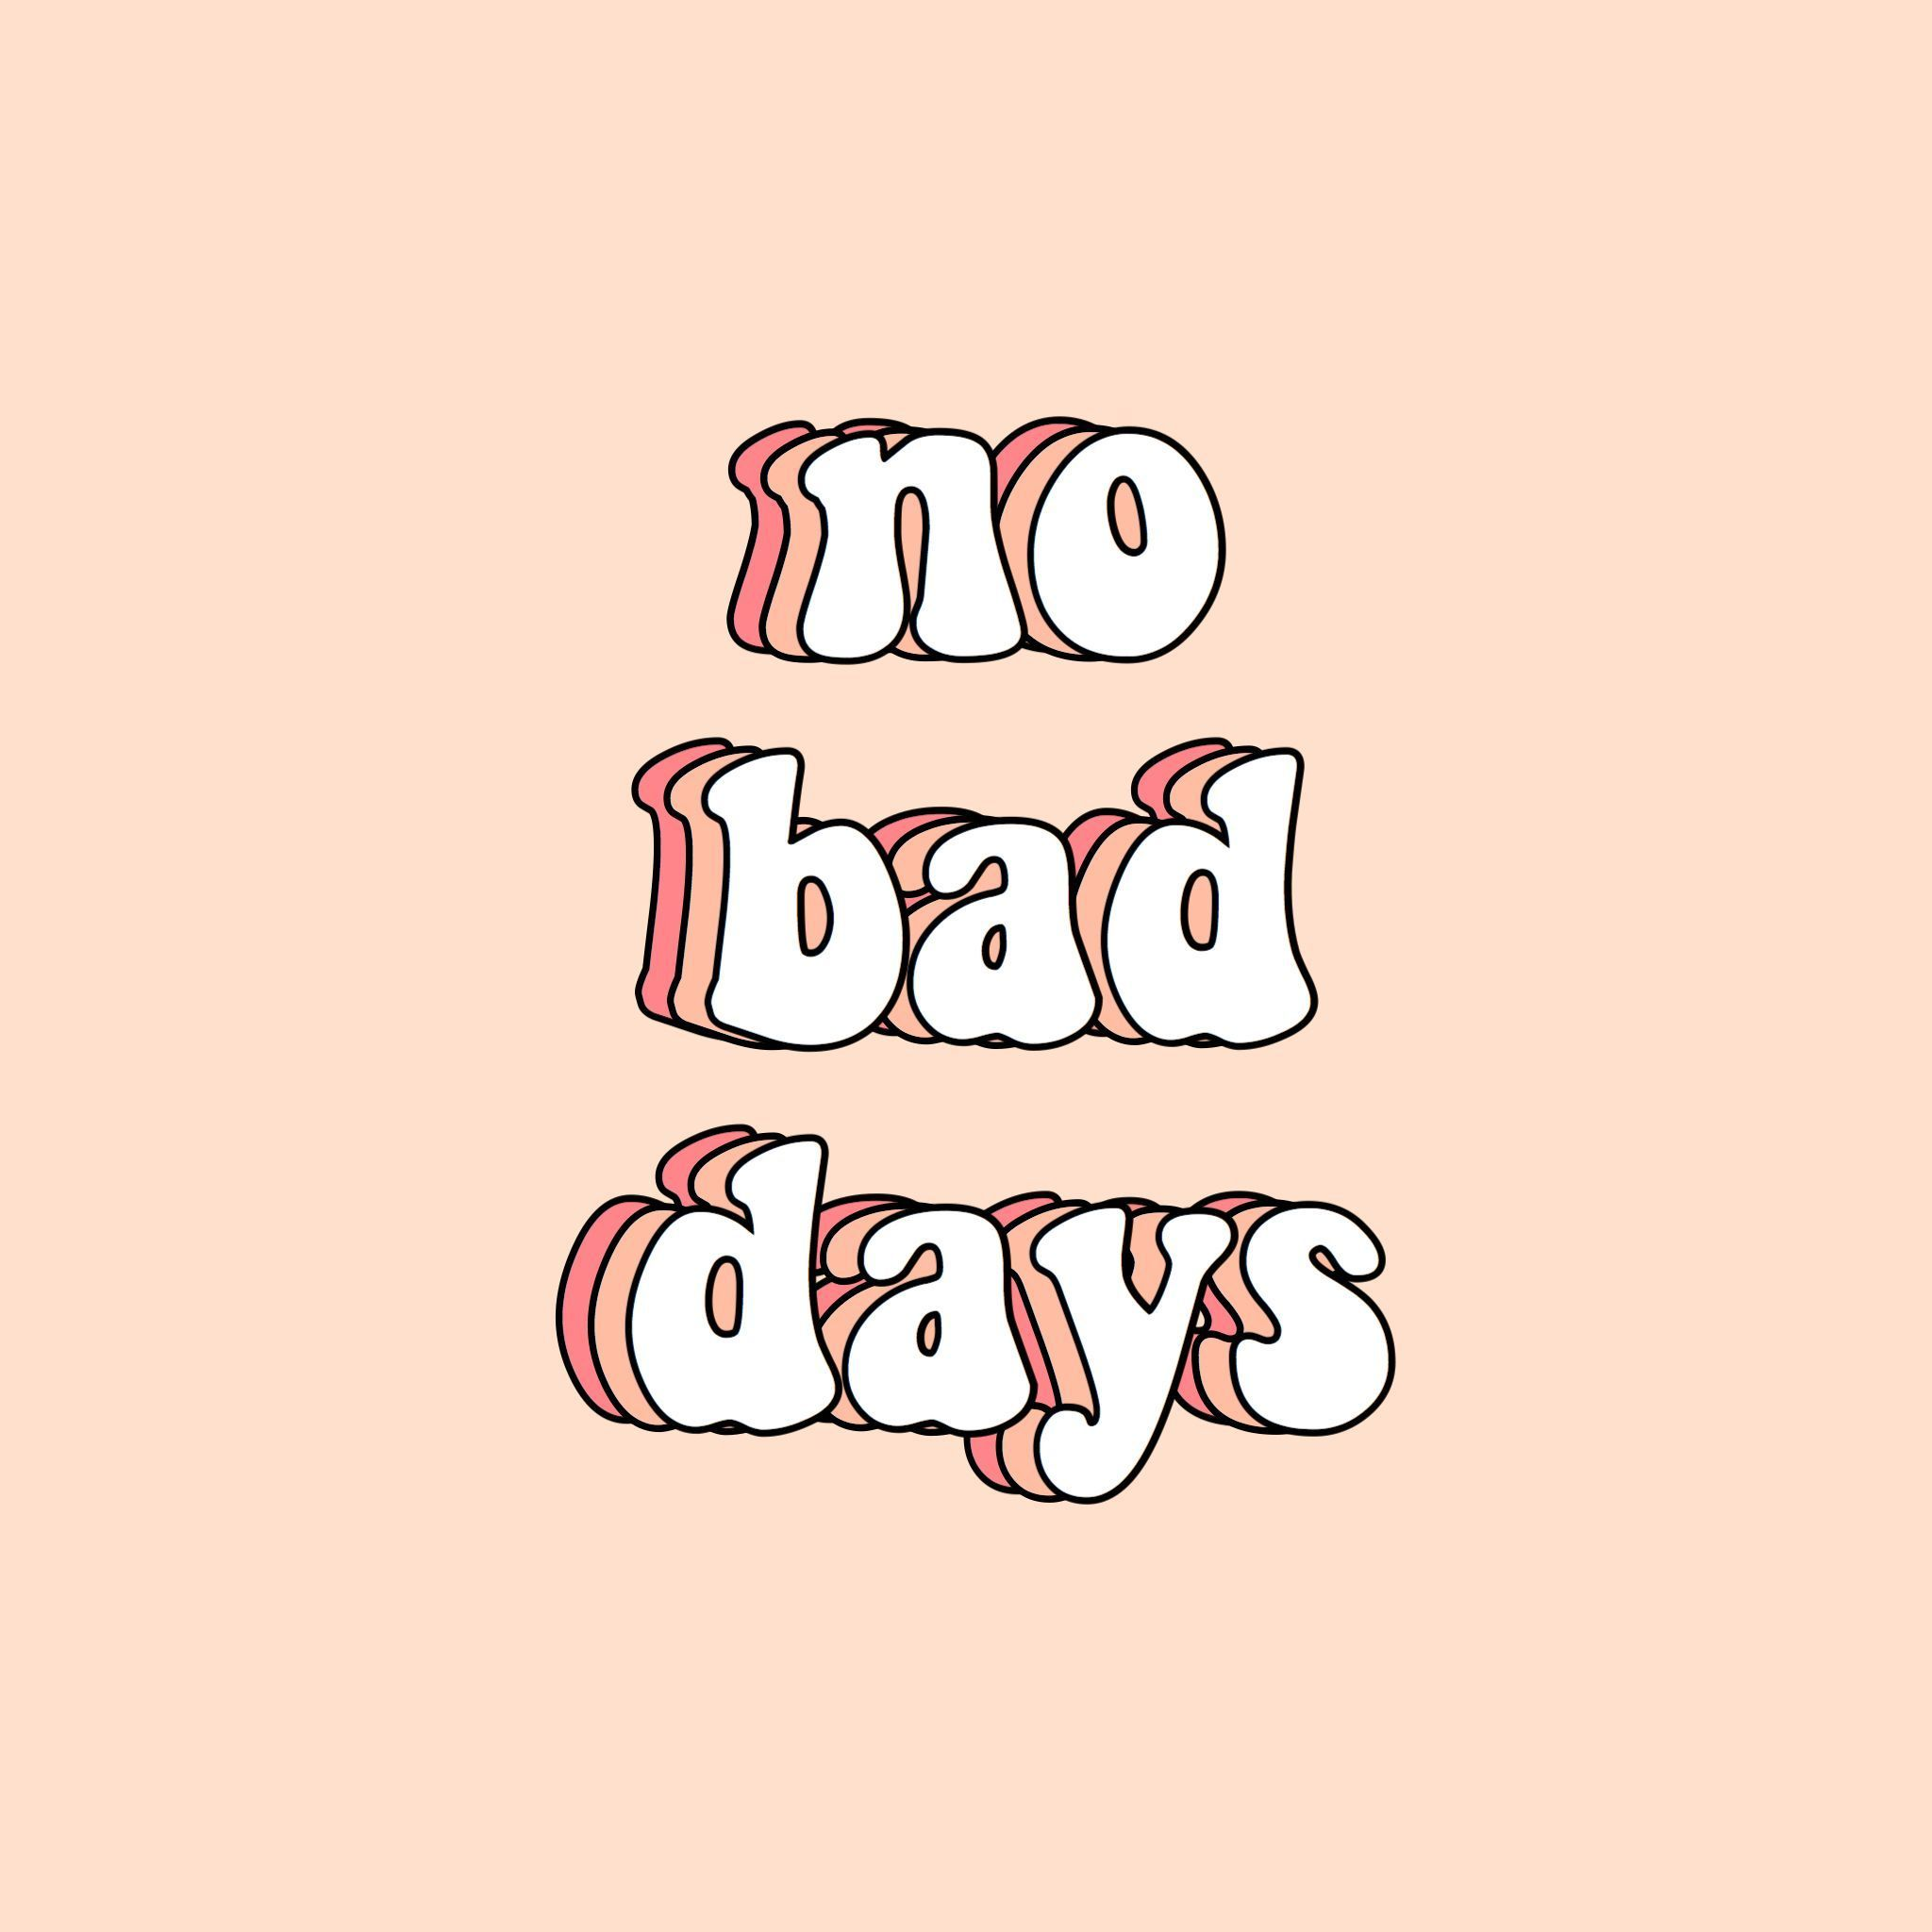 Pin On Blue Aesthetic Wallpaper Bad Day Quotes Words Wallpaper Art Collage Wall